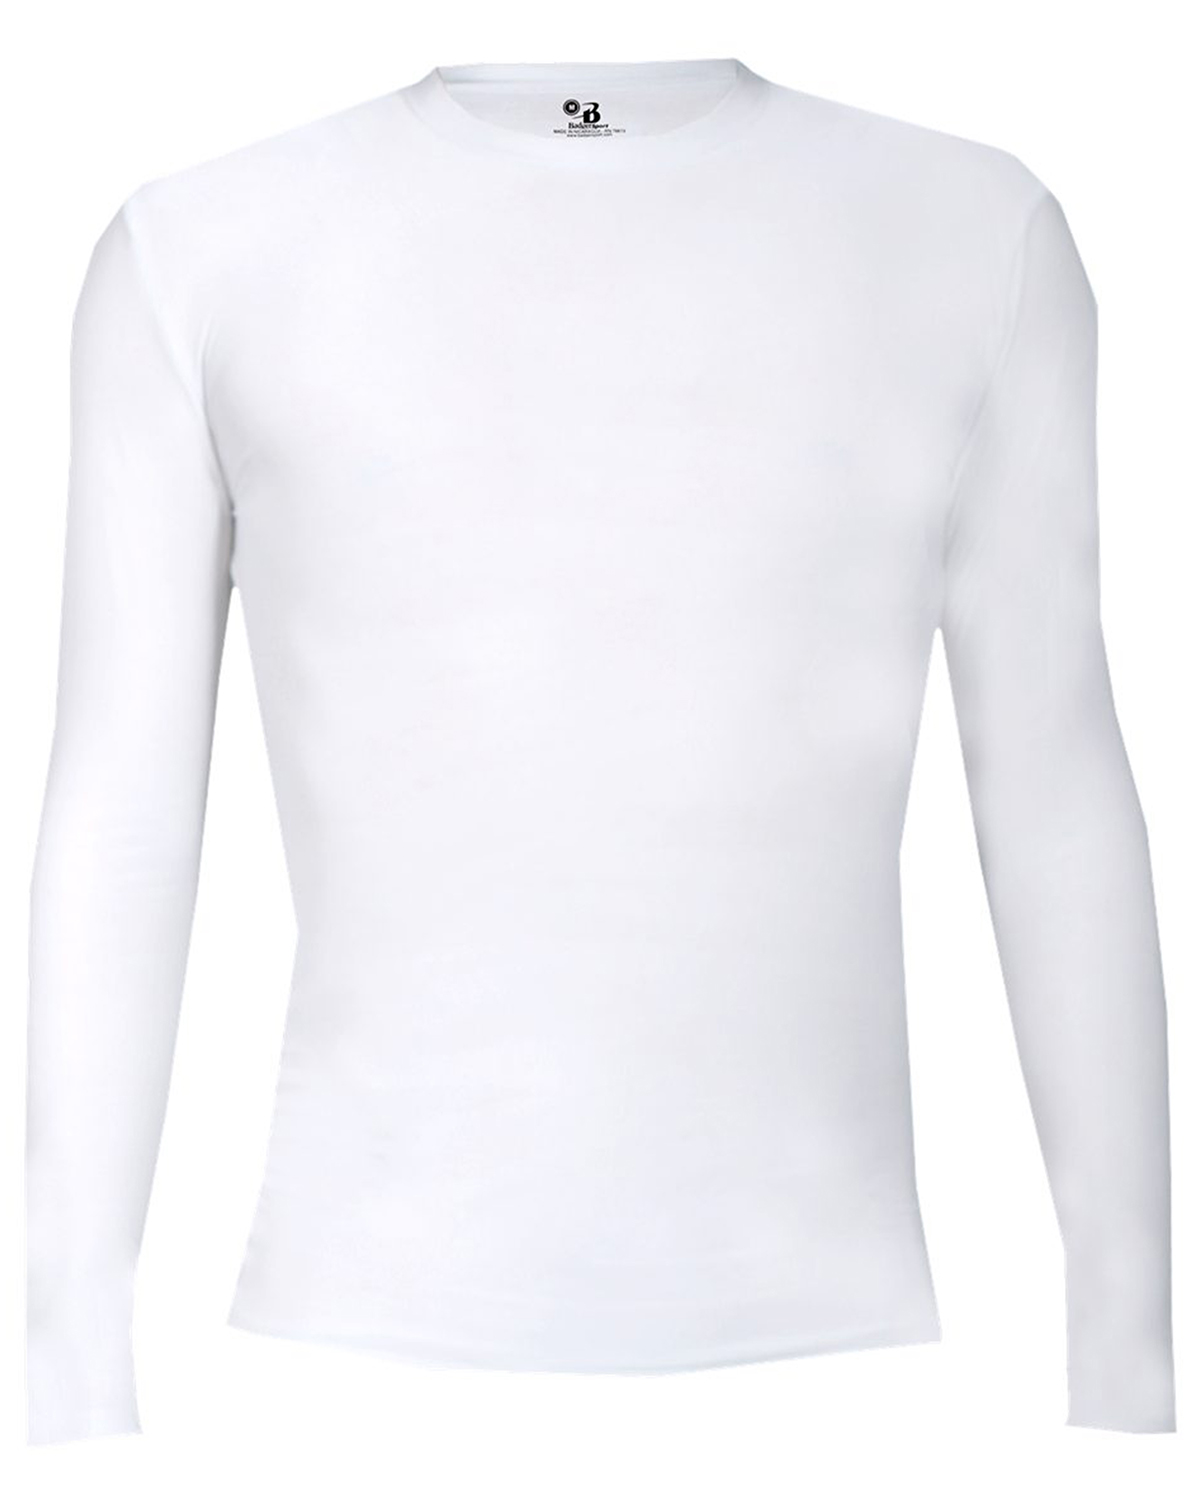 Badger Sport B4605 - Adult Pro-Compression Long Sleeve ...